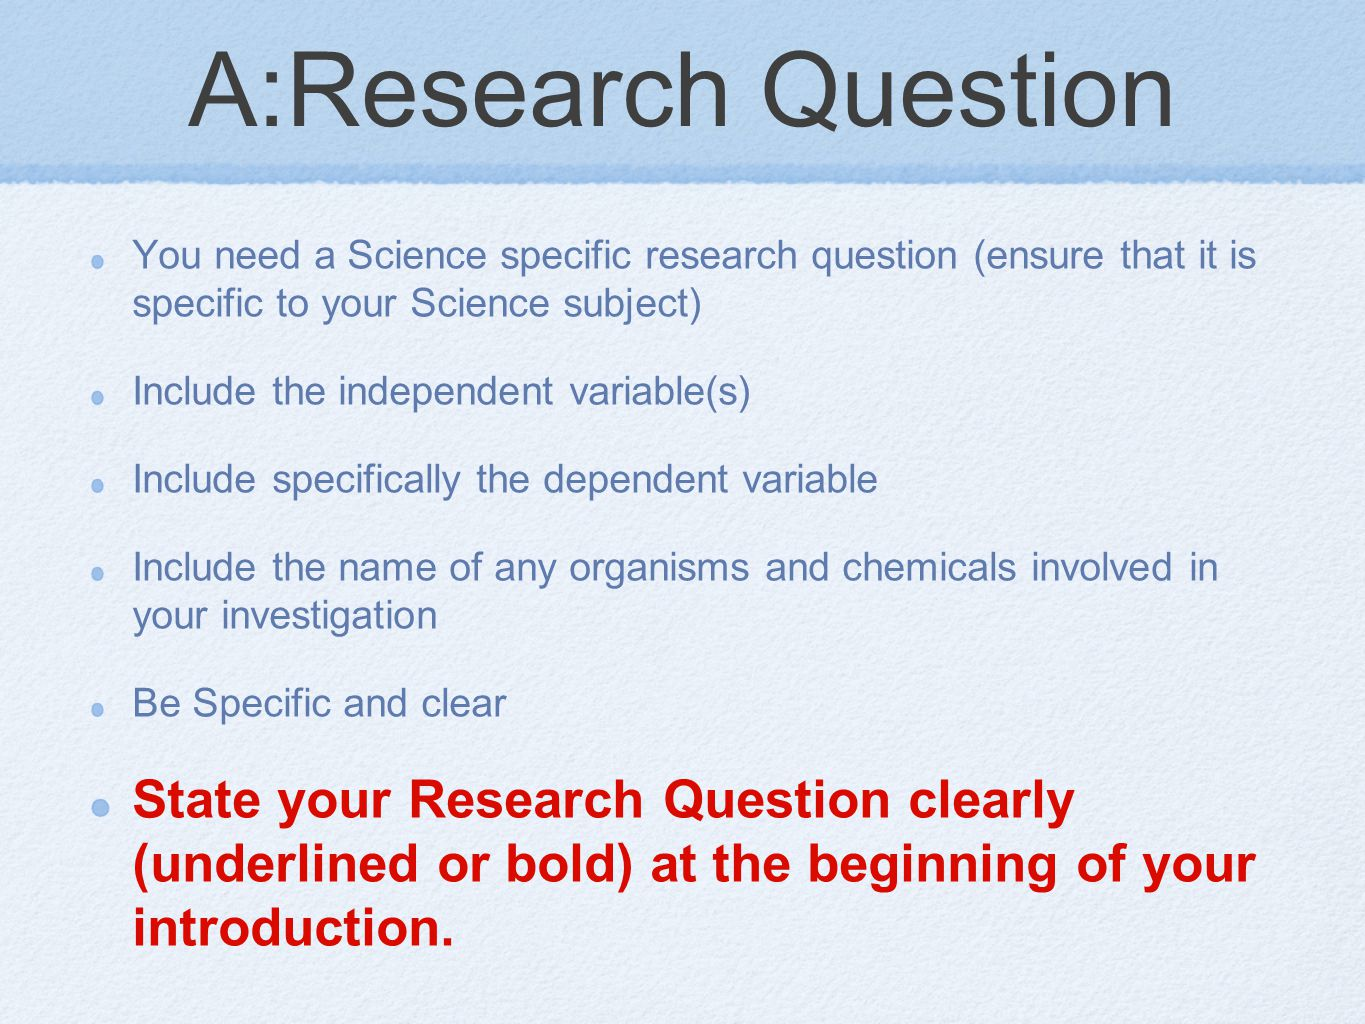 A:Research Question You need a Science specific research question (ensure that it is specific to your Science subject) Include the independent variable(s) Include specifically the dependent variable Include the name of any organisms and chemicals involved in your investigation Be Specific and clear State your Research Question clearly (underlined or bold) at the beginning of your introduction.